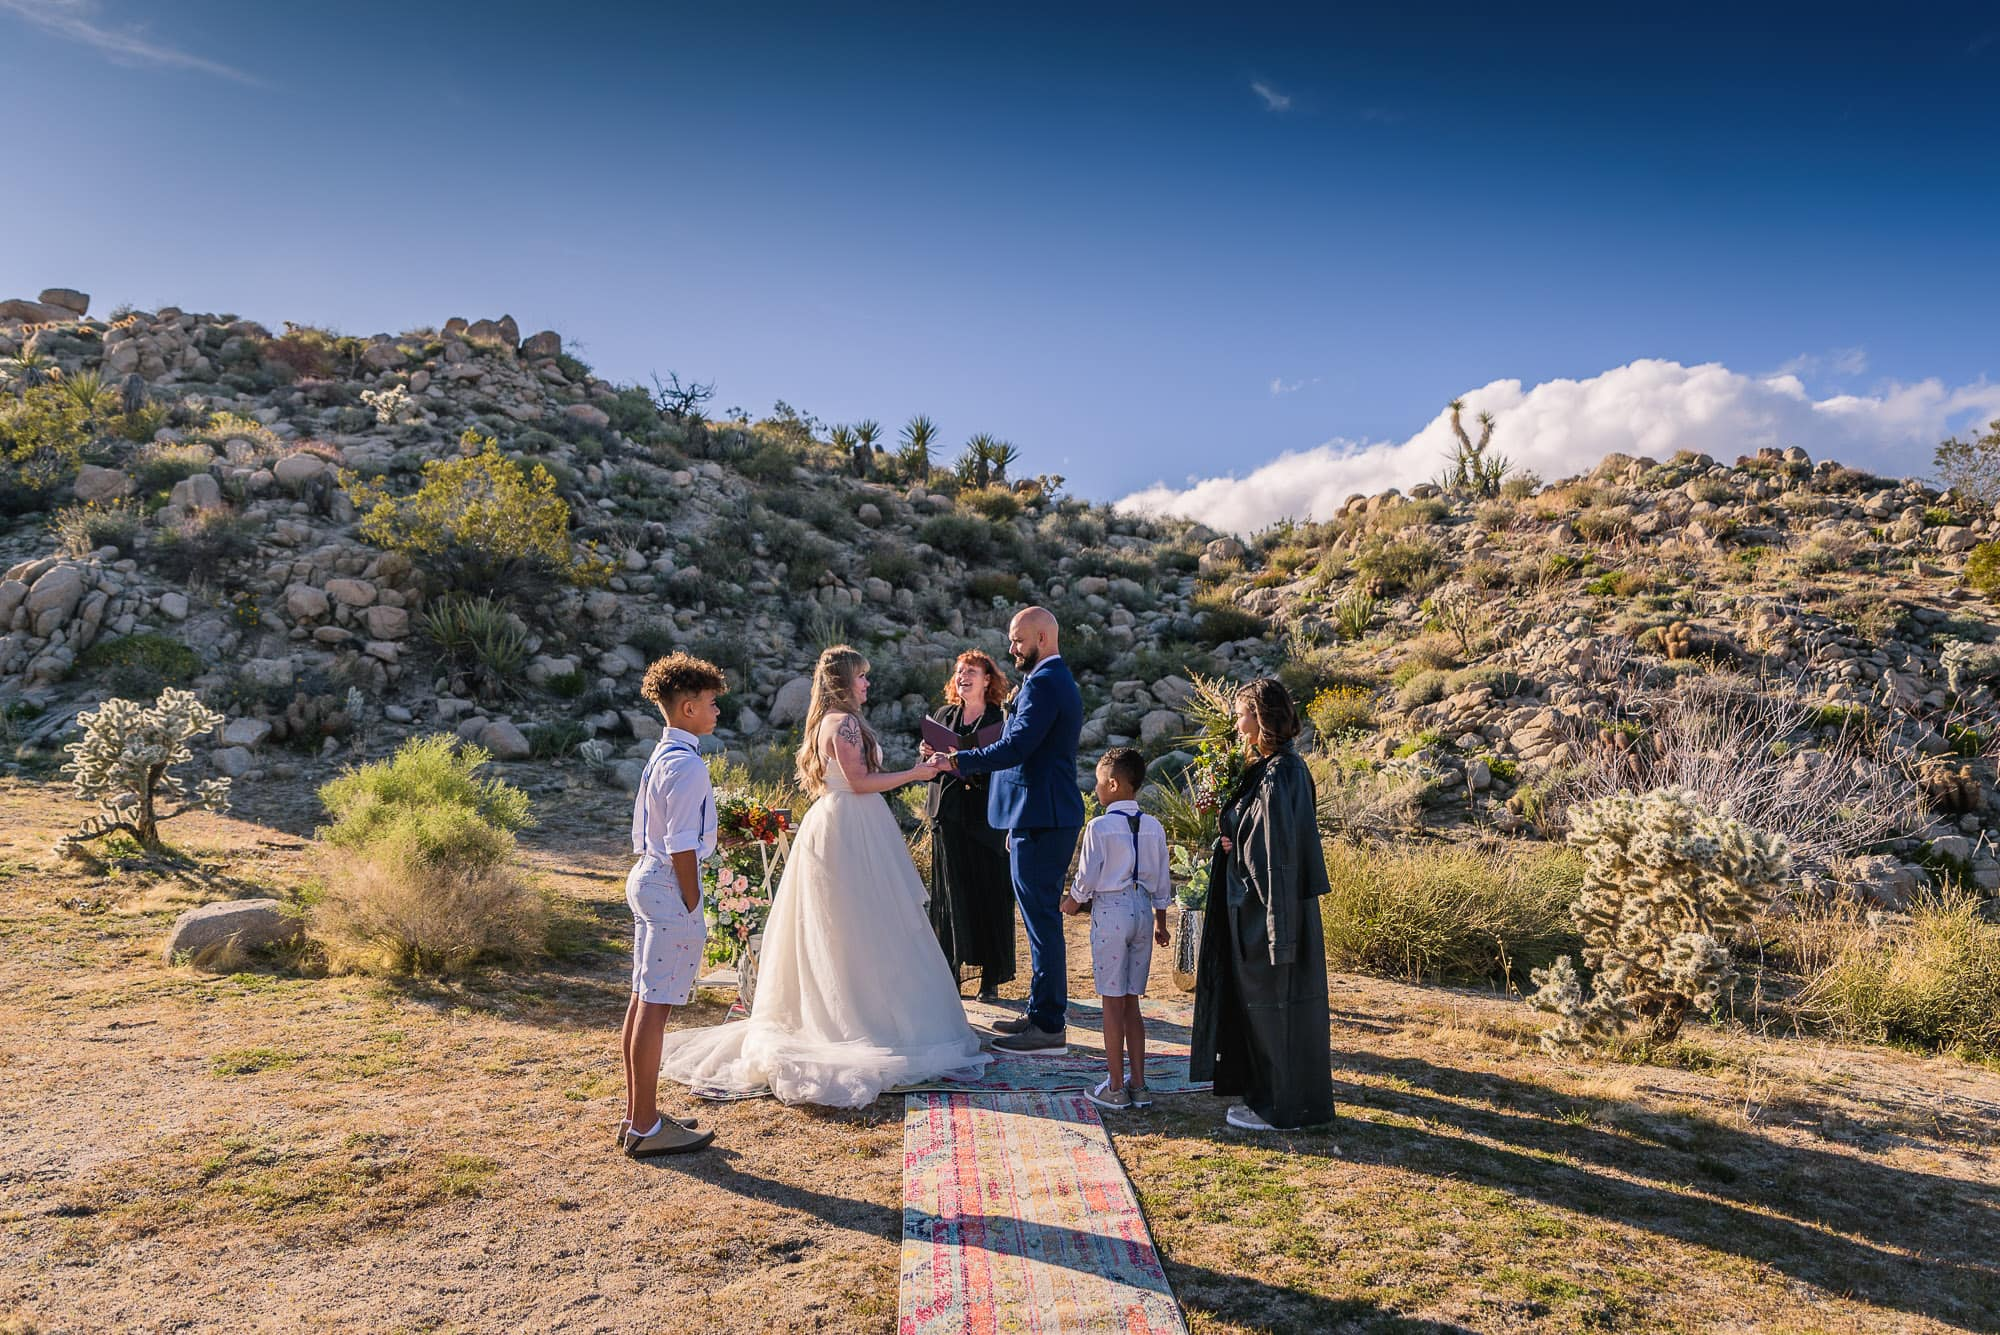 021_Alan_and_Heidi_Joshua_Tree_Spring_Elopement